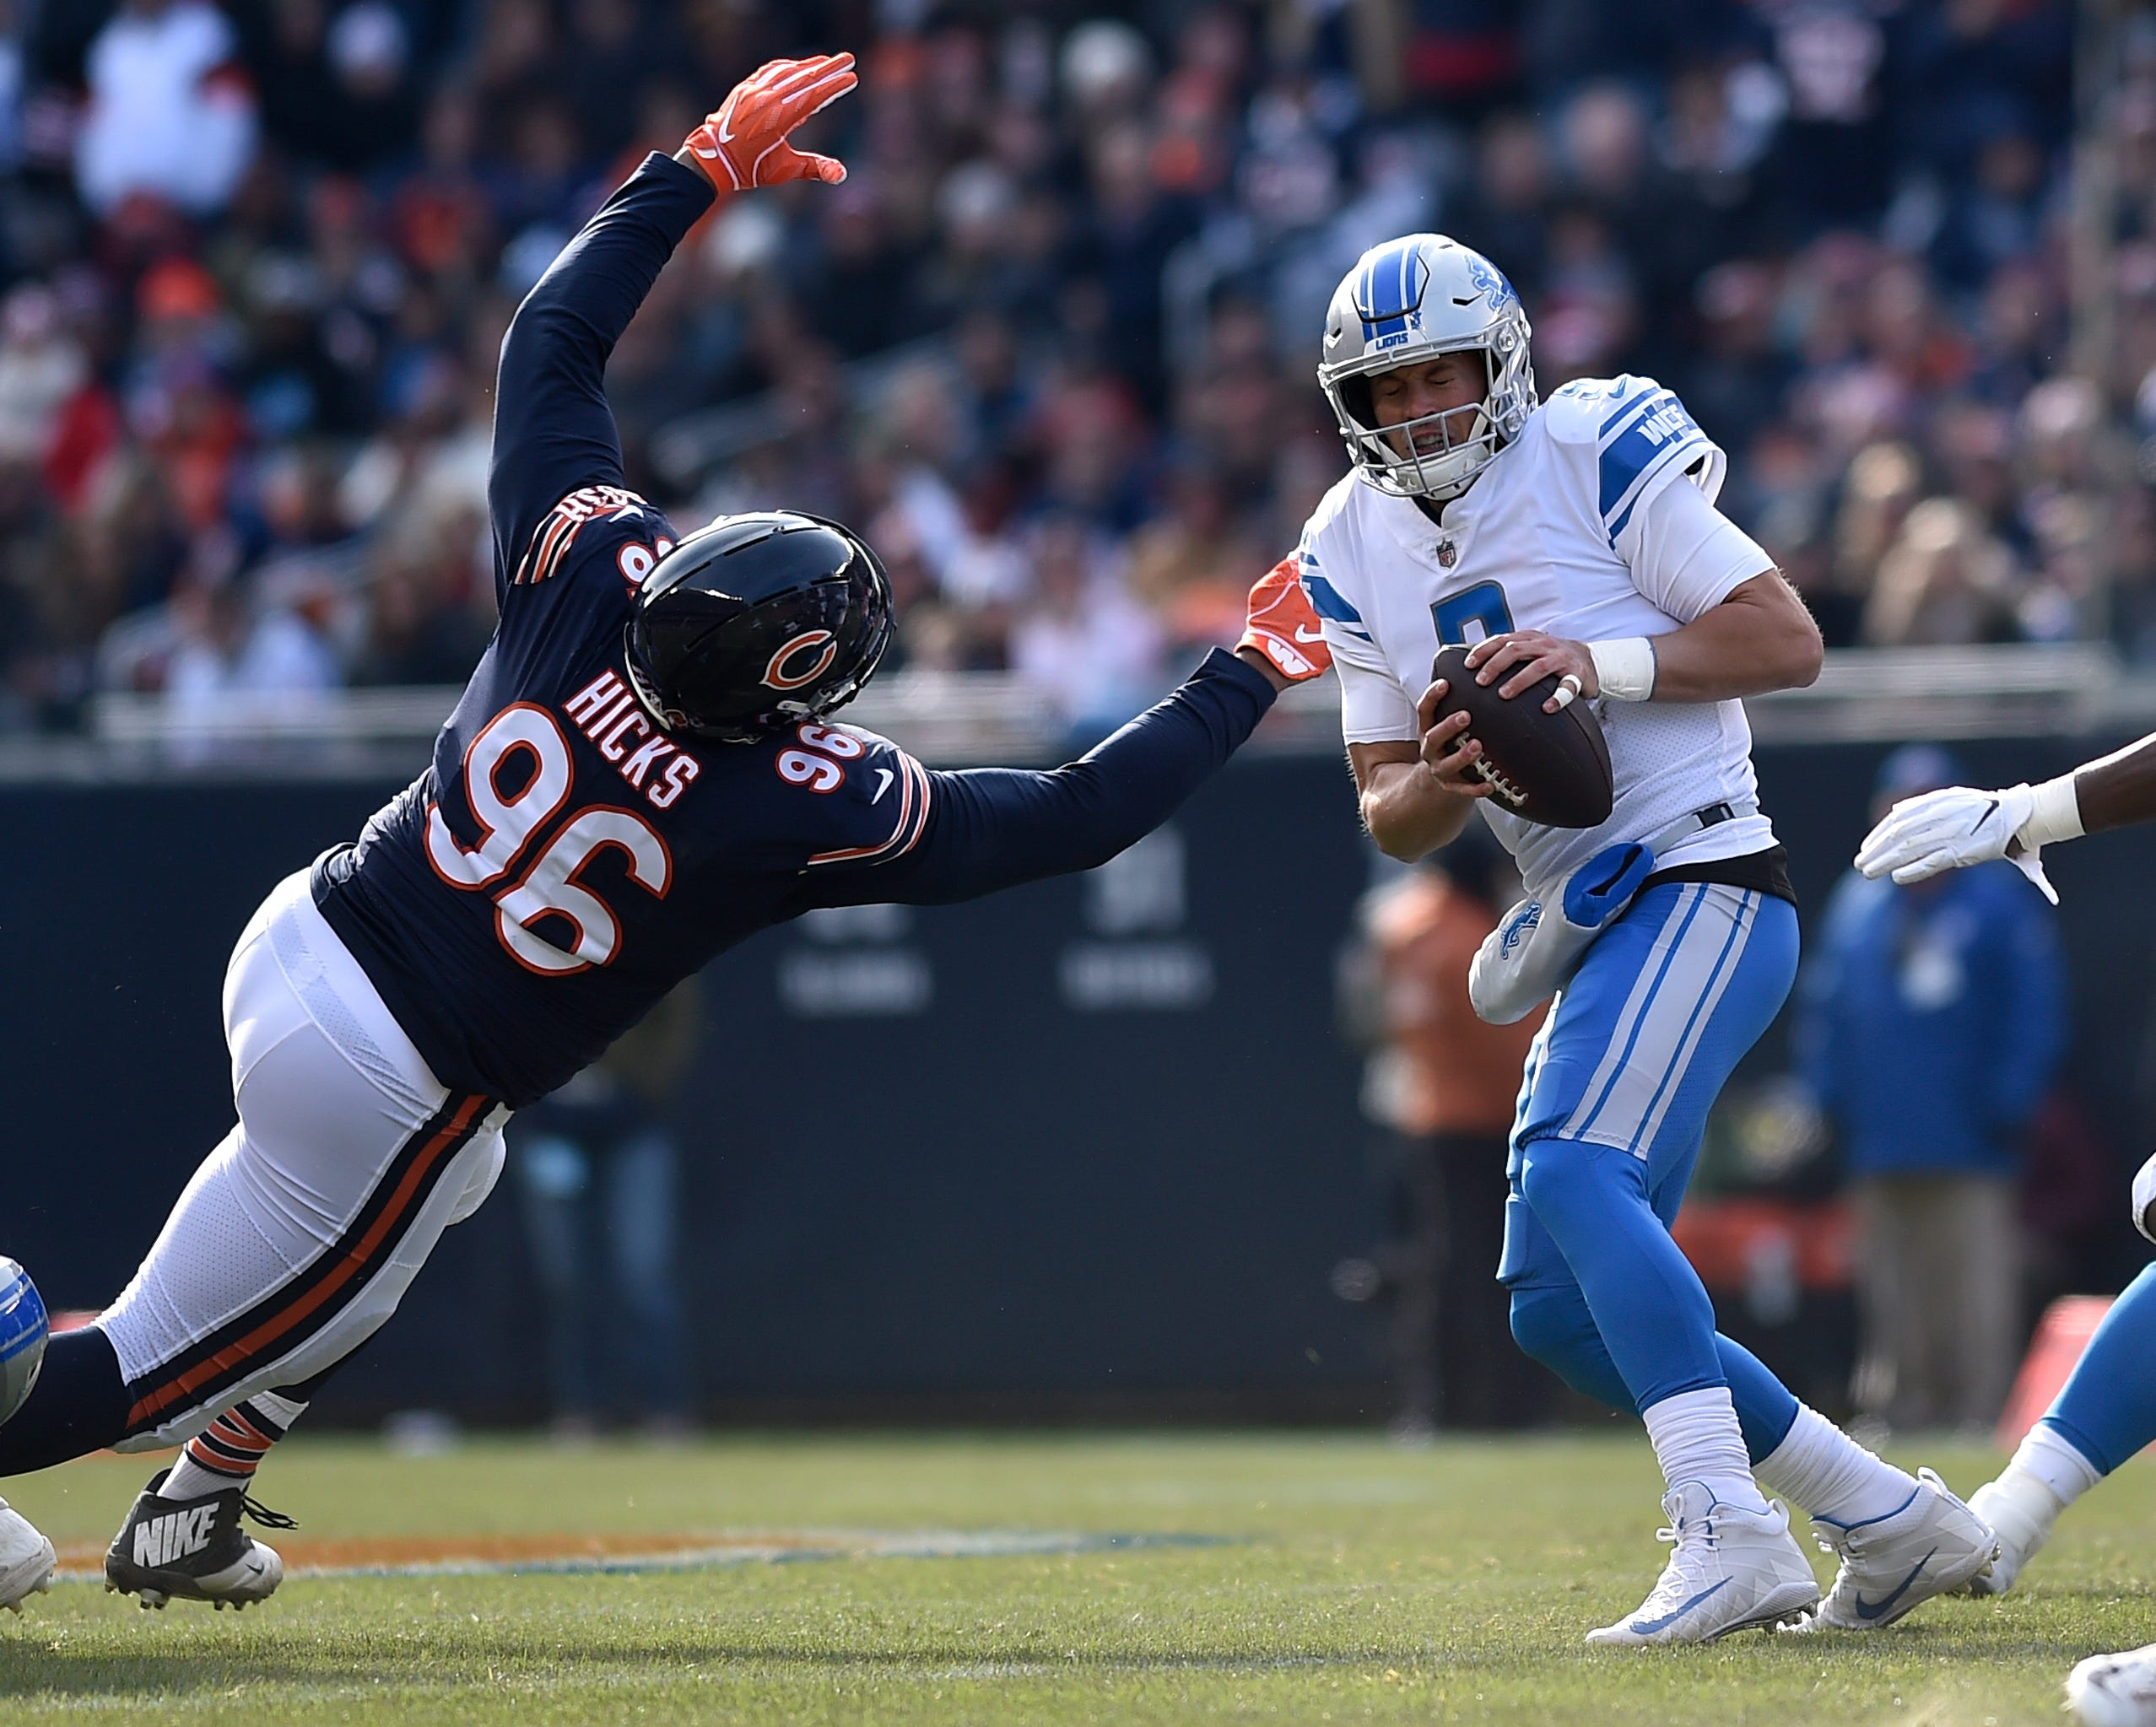 Bears defensive lineman Akiem Hicks lunges at Lions quarterback Matthew Stafford in the first quarter on Sunday, Nov. 11, 2018, in Chicago.